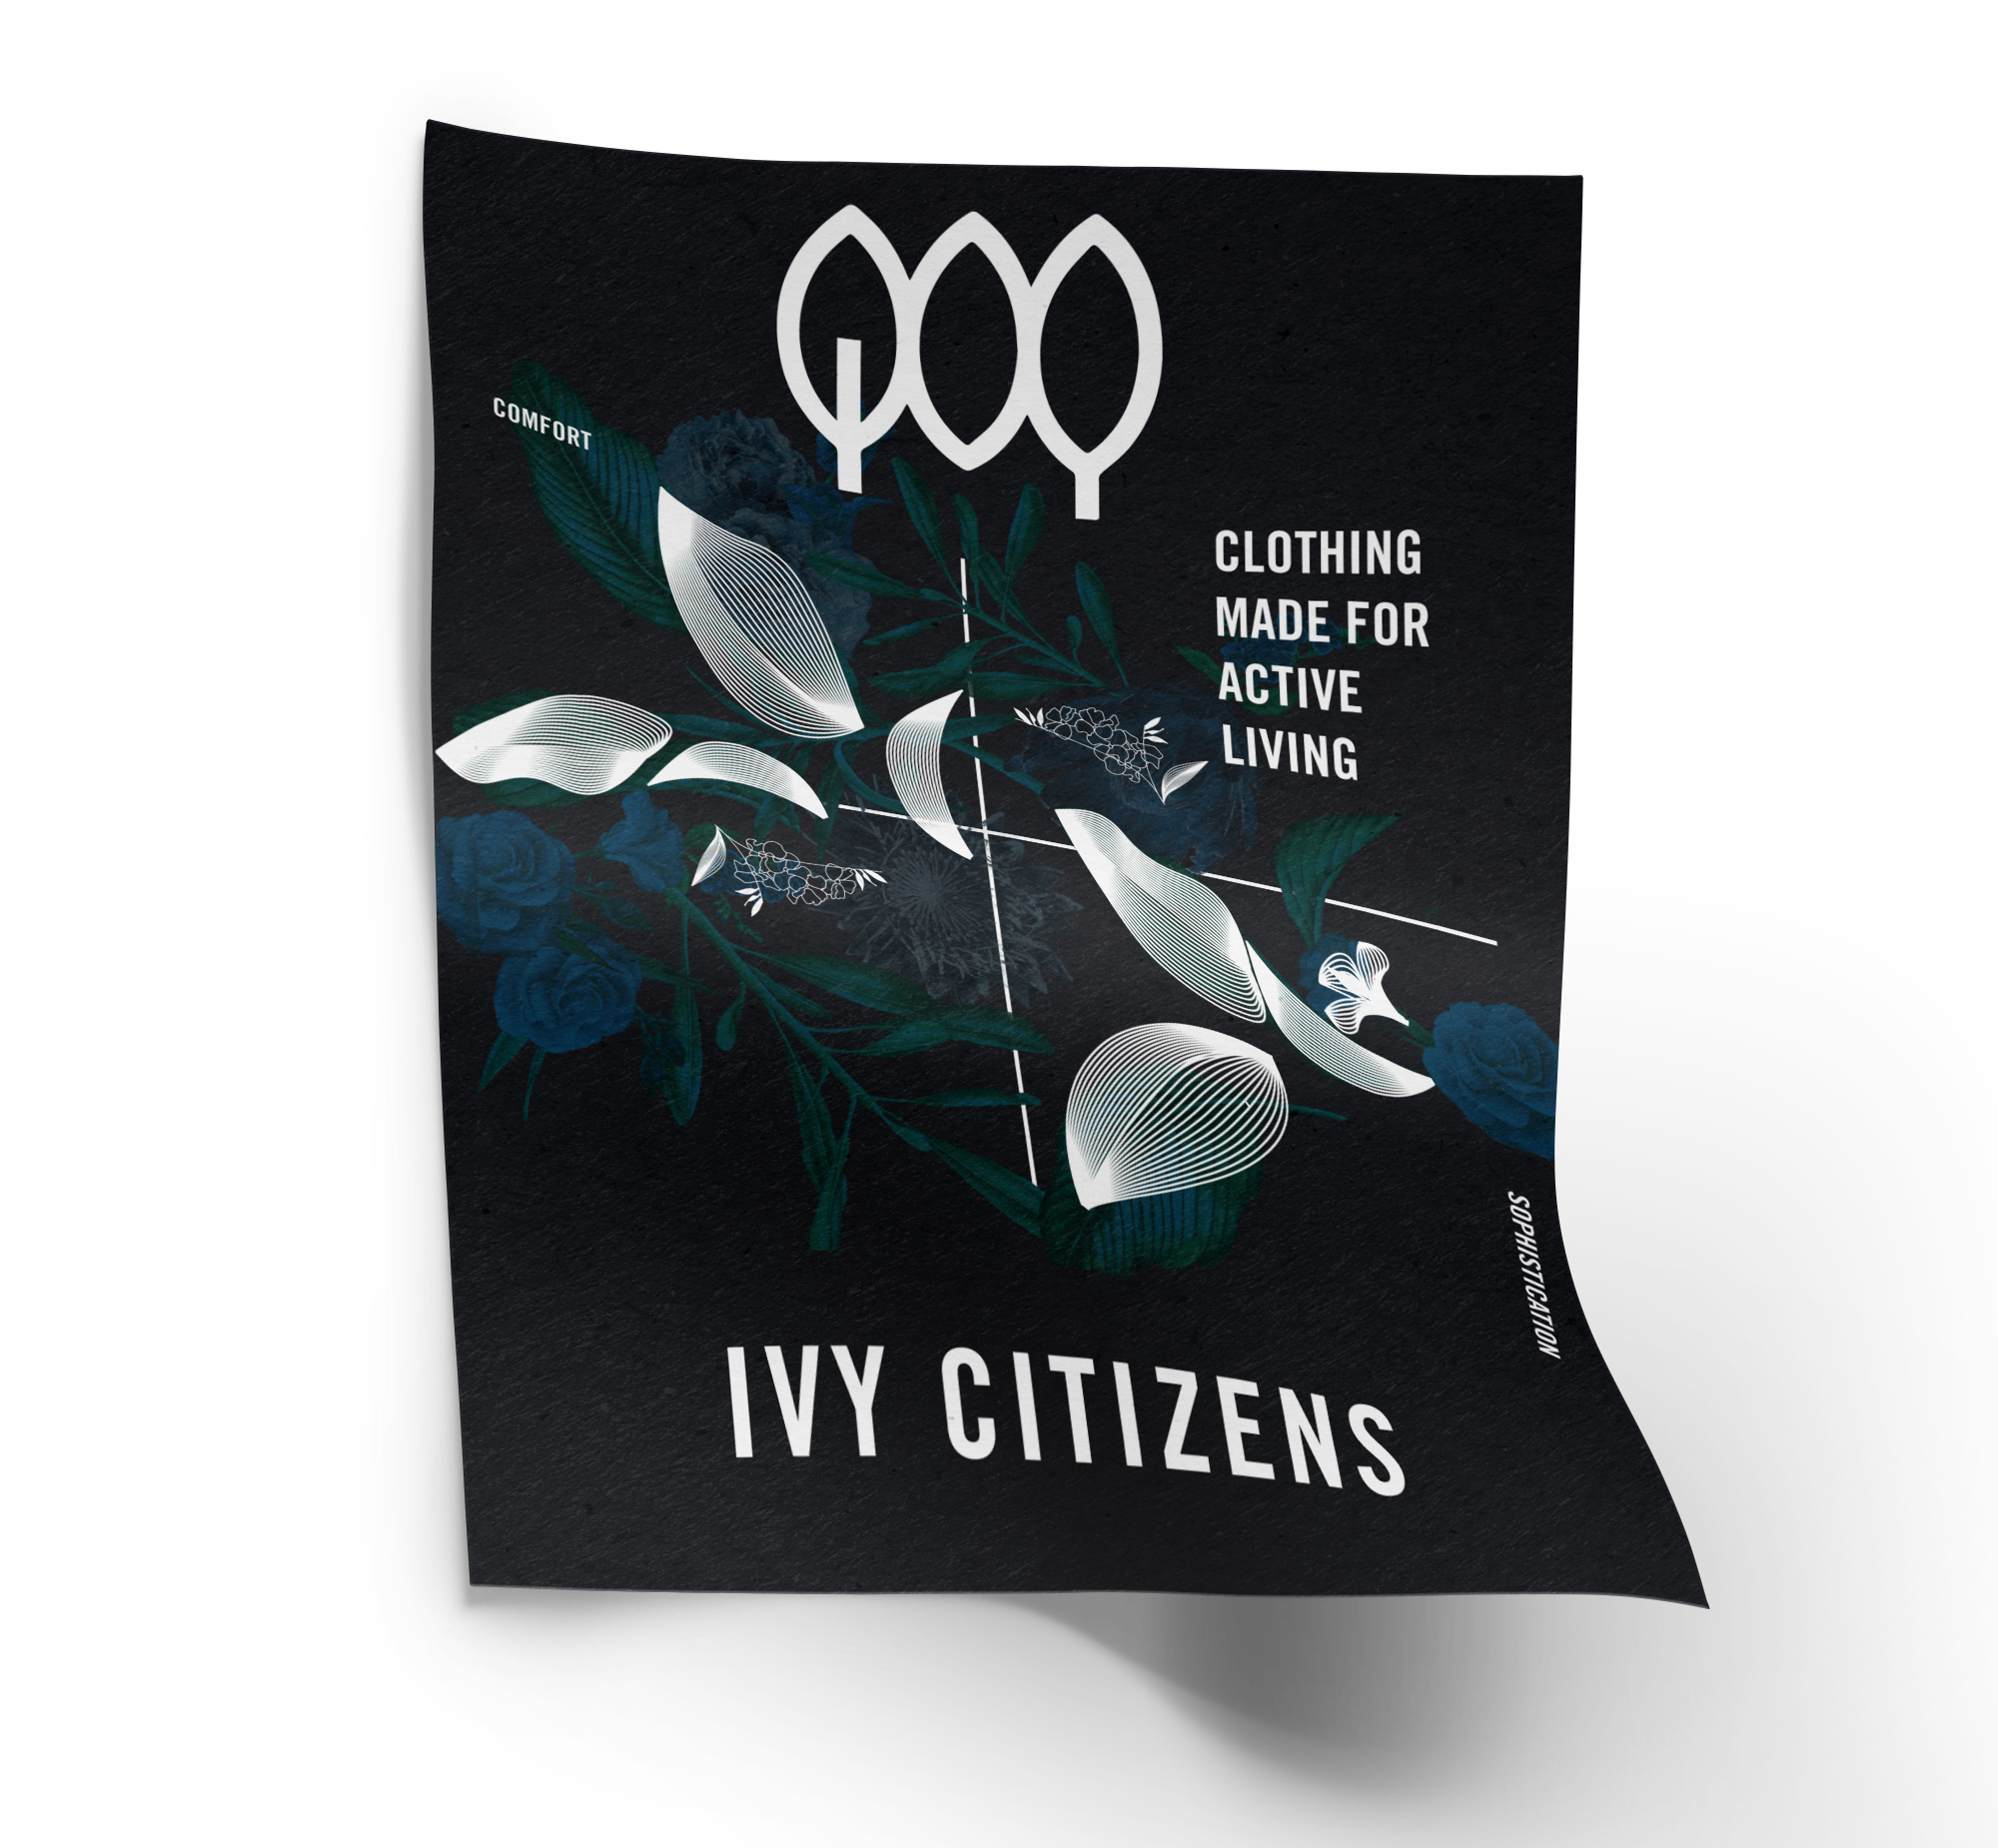 ivy citizens poster and advertising campaign developed by wit group